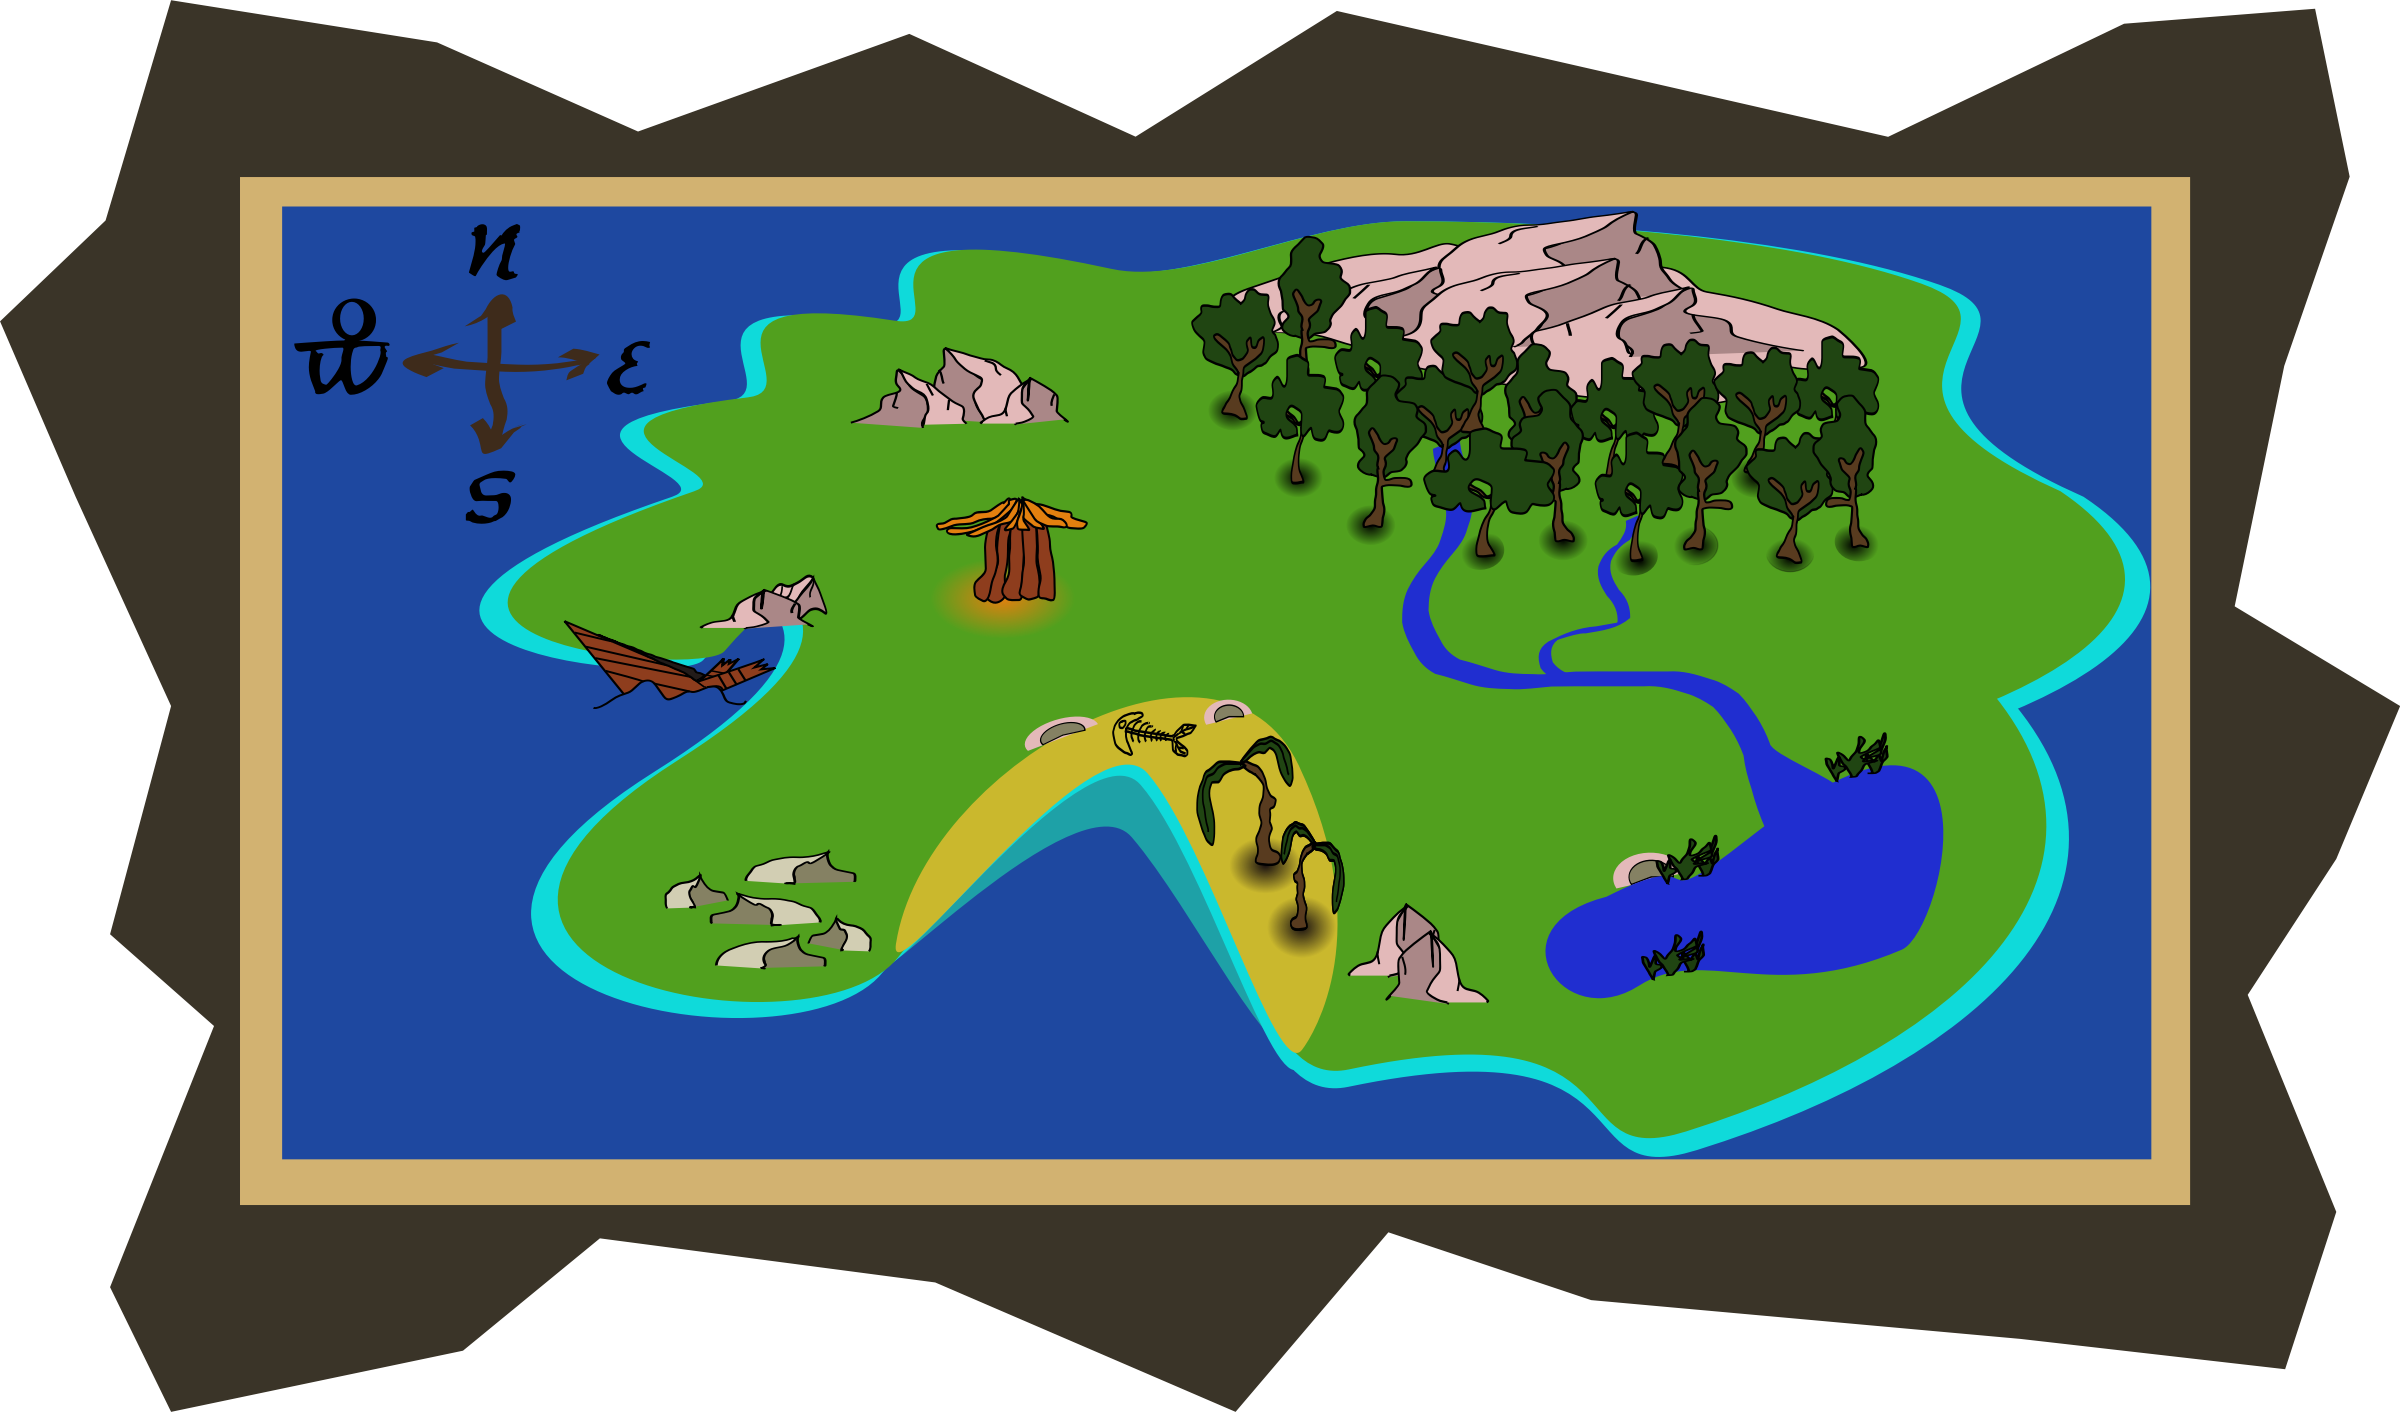 Maps clipart island map, Maps island map Transparent FREE.